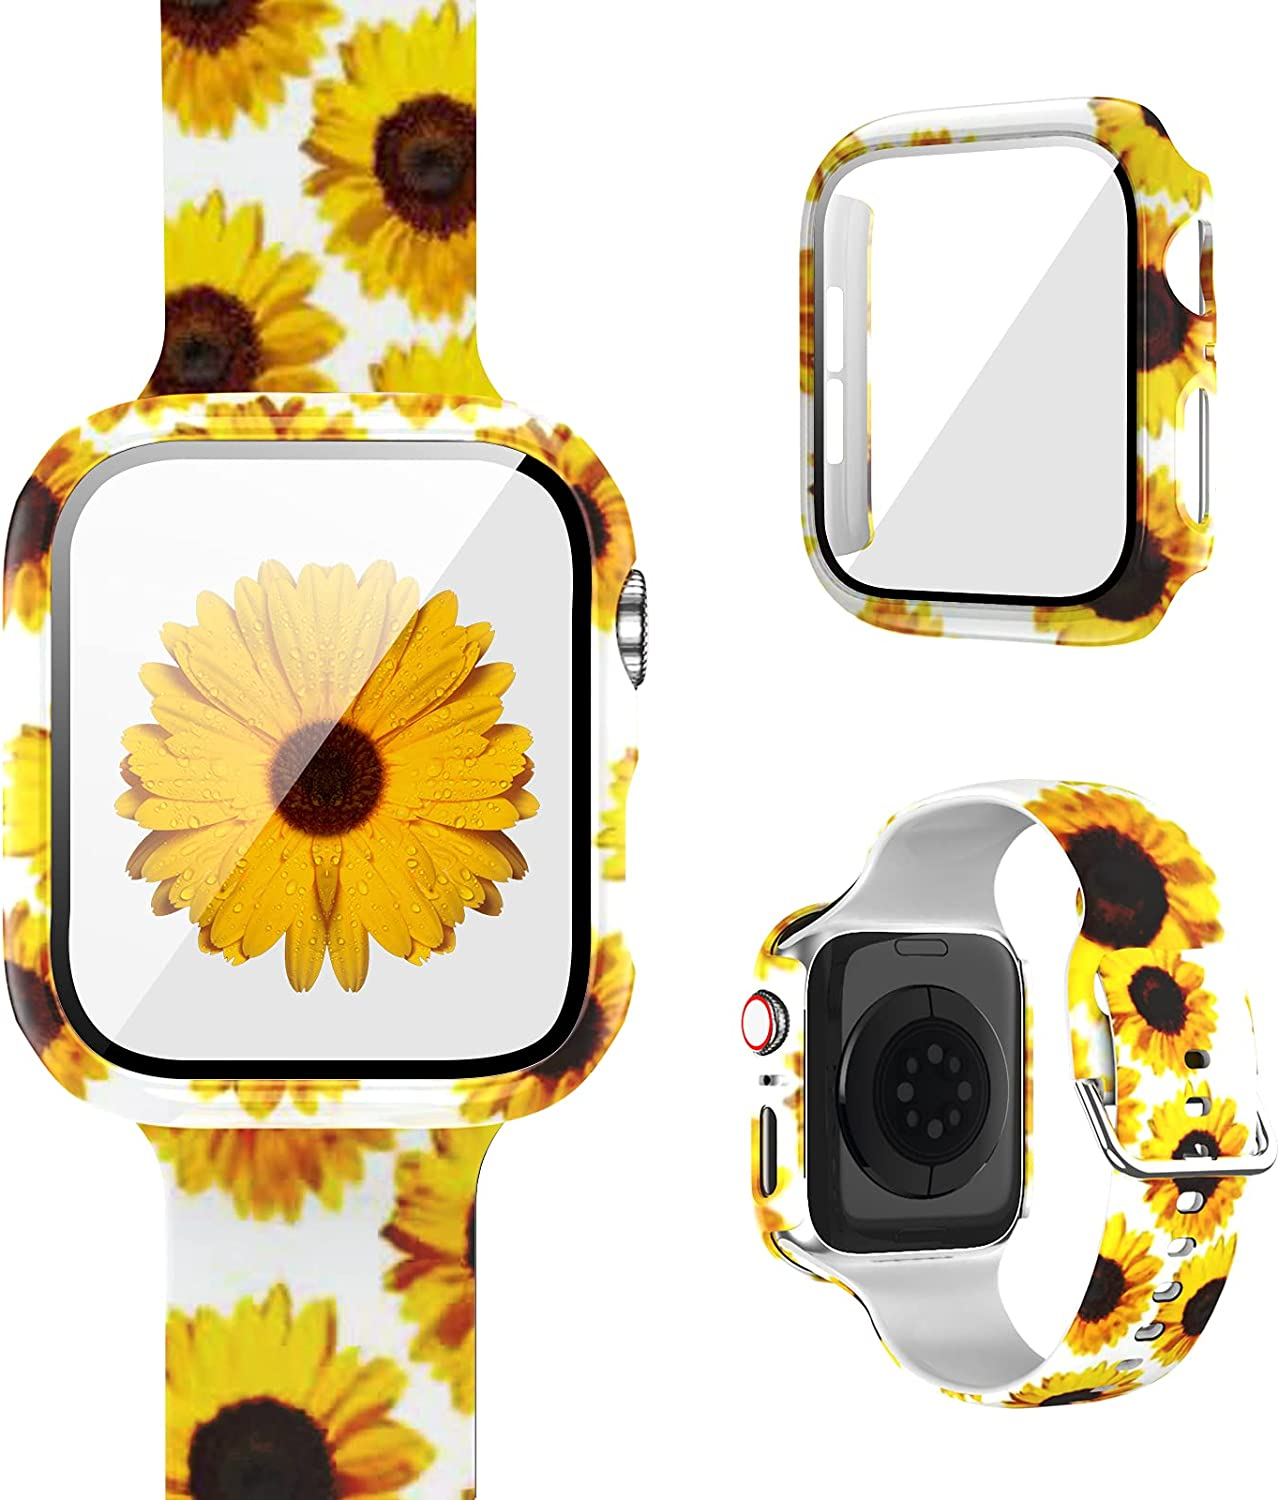 1+1 Pack Compatible for Apple Case Band W with Max 40% OFF Watch All items free shipping